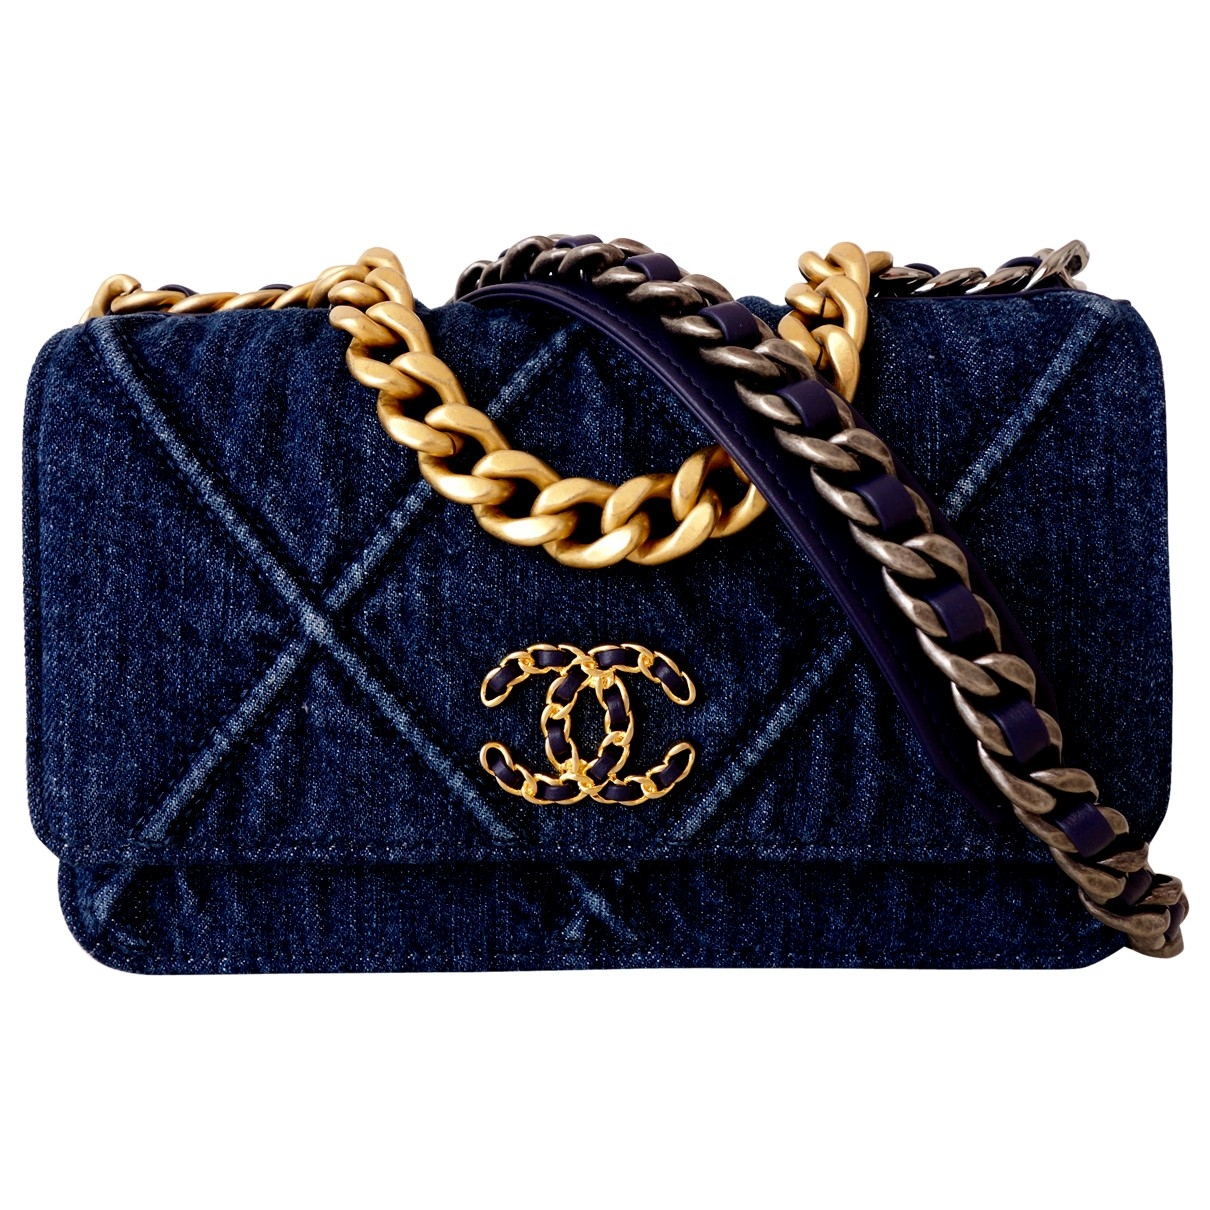 Chanel Chanel 19 Blue Denim - Jeans handbag for Women \N